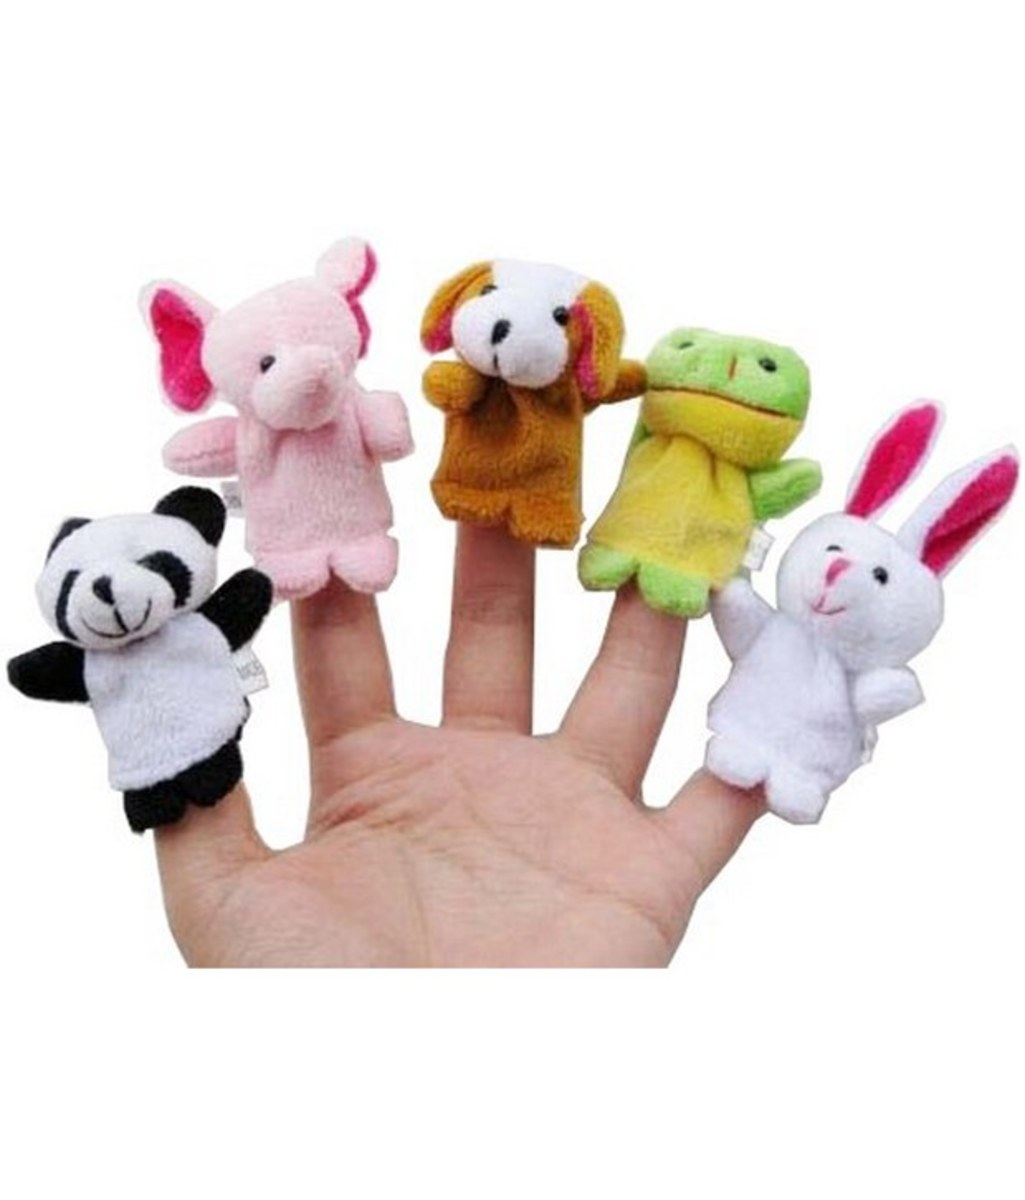 looking-for-socking-stuffers-start-with-soft-plush-animal-finger-puppets